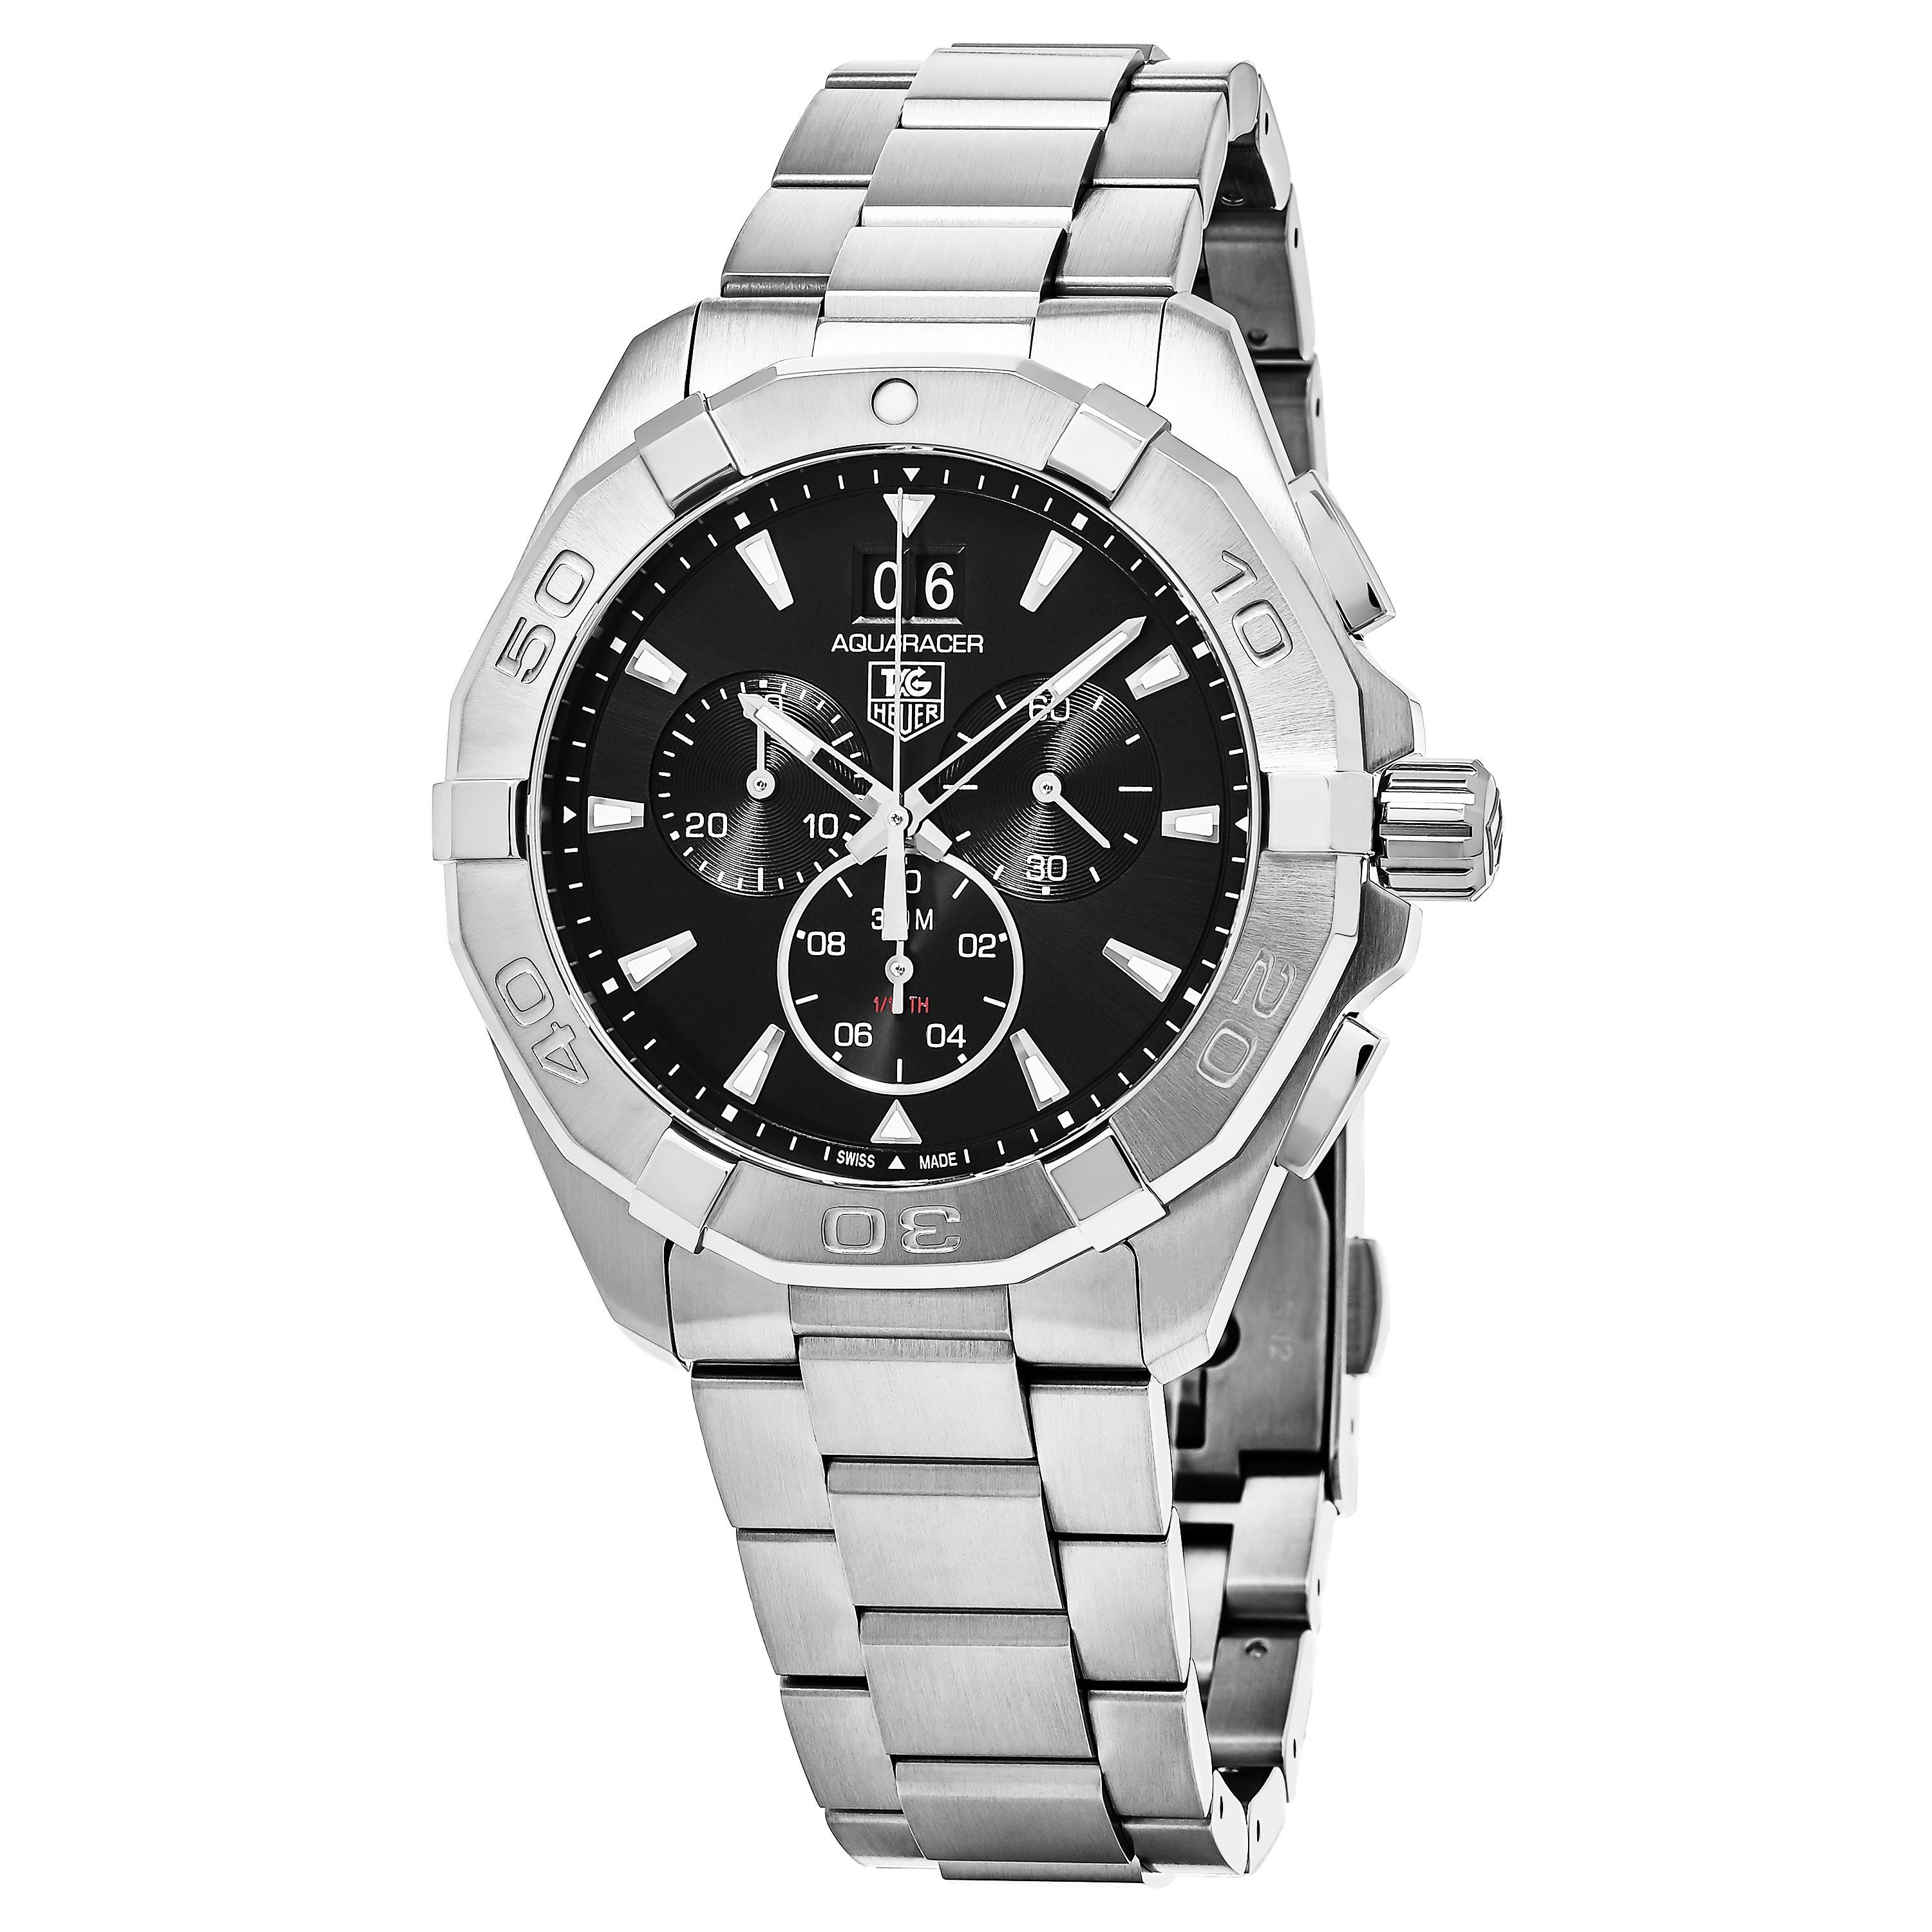 Tag Heuer Men's CAY1110.BA0927 '300 Aquaracer' Dial Chronograph Swiss Automatic Watch